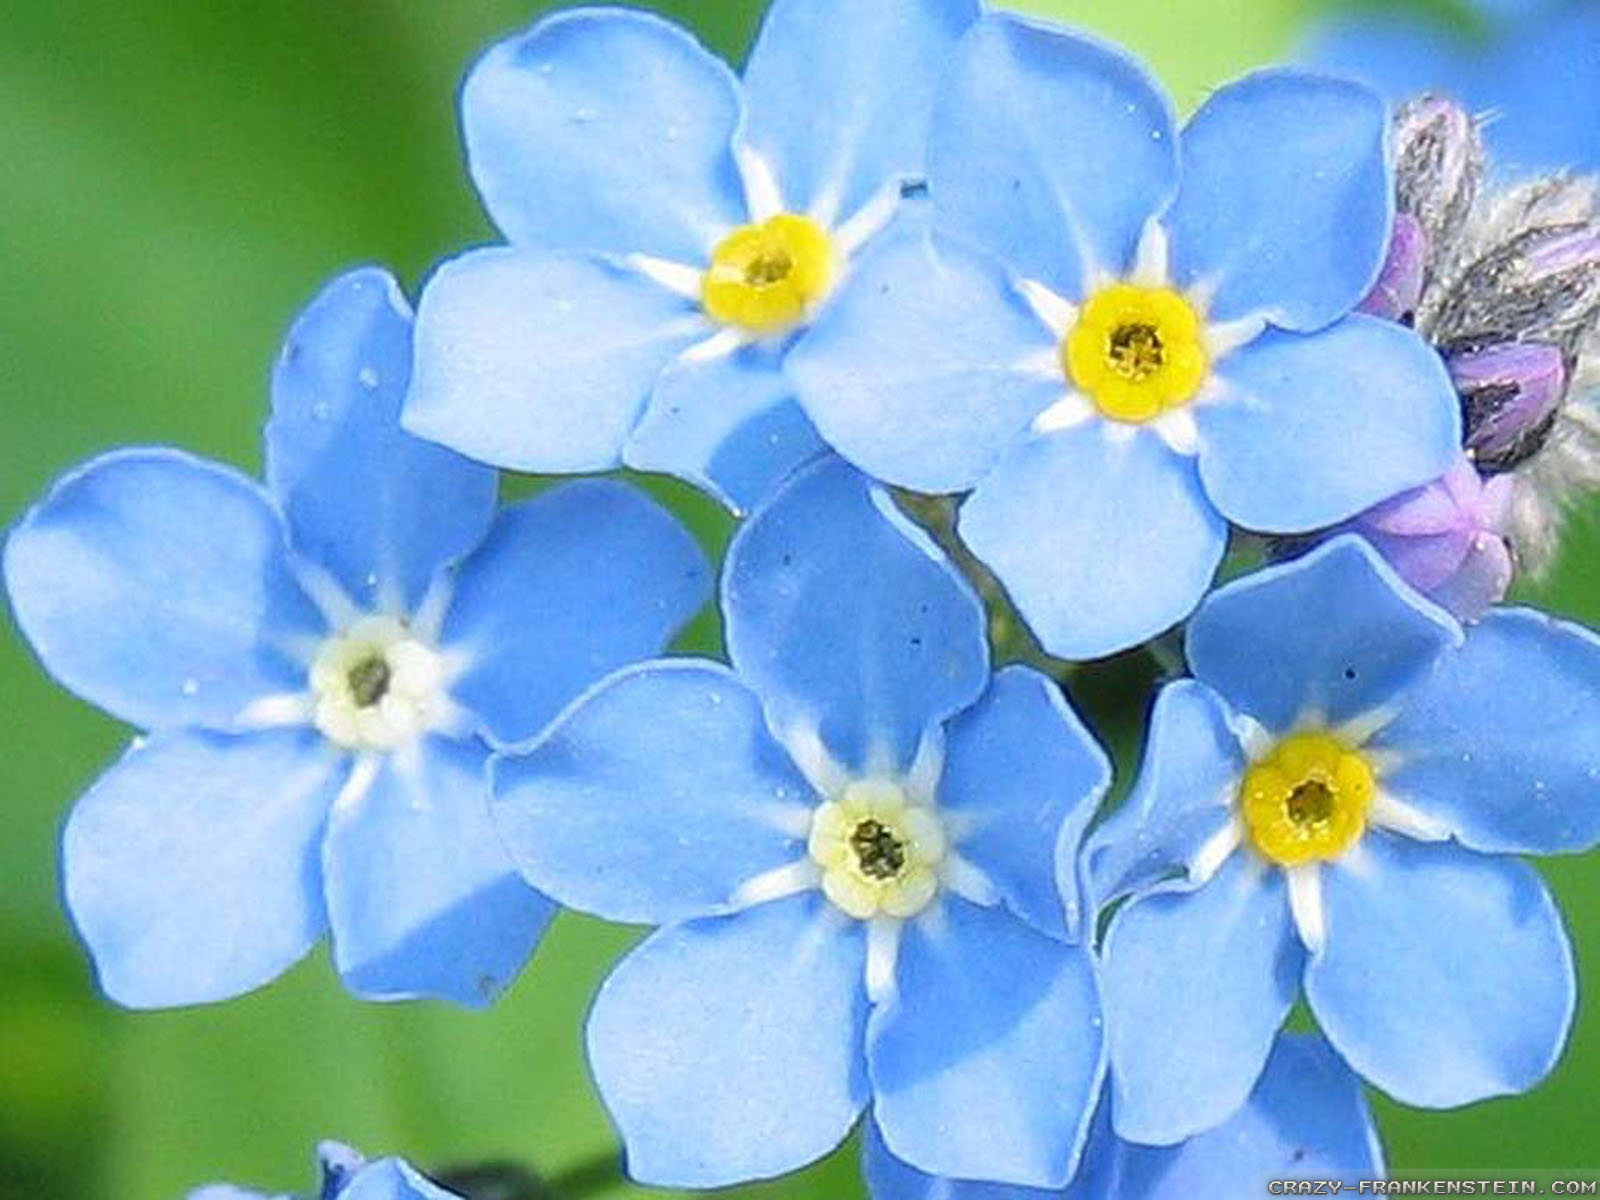 Blue flowers available in october 18 background hdflowerwallpaper blue flowers available in october widescreen wallpaper izmirmasajfo